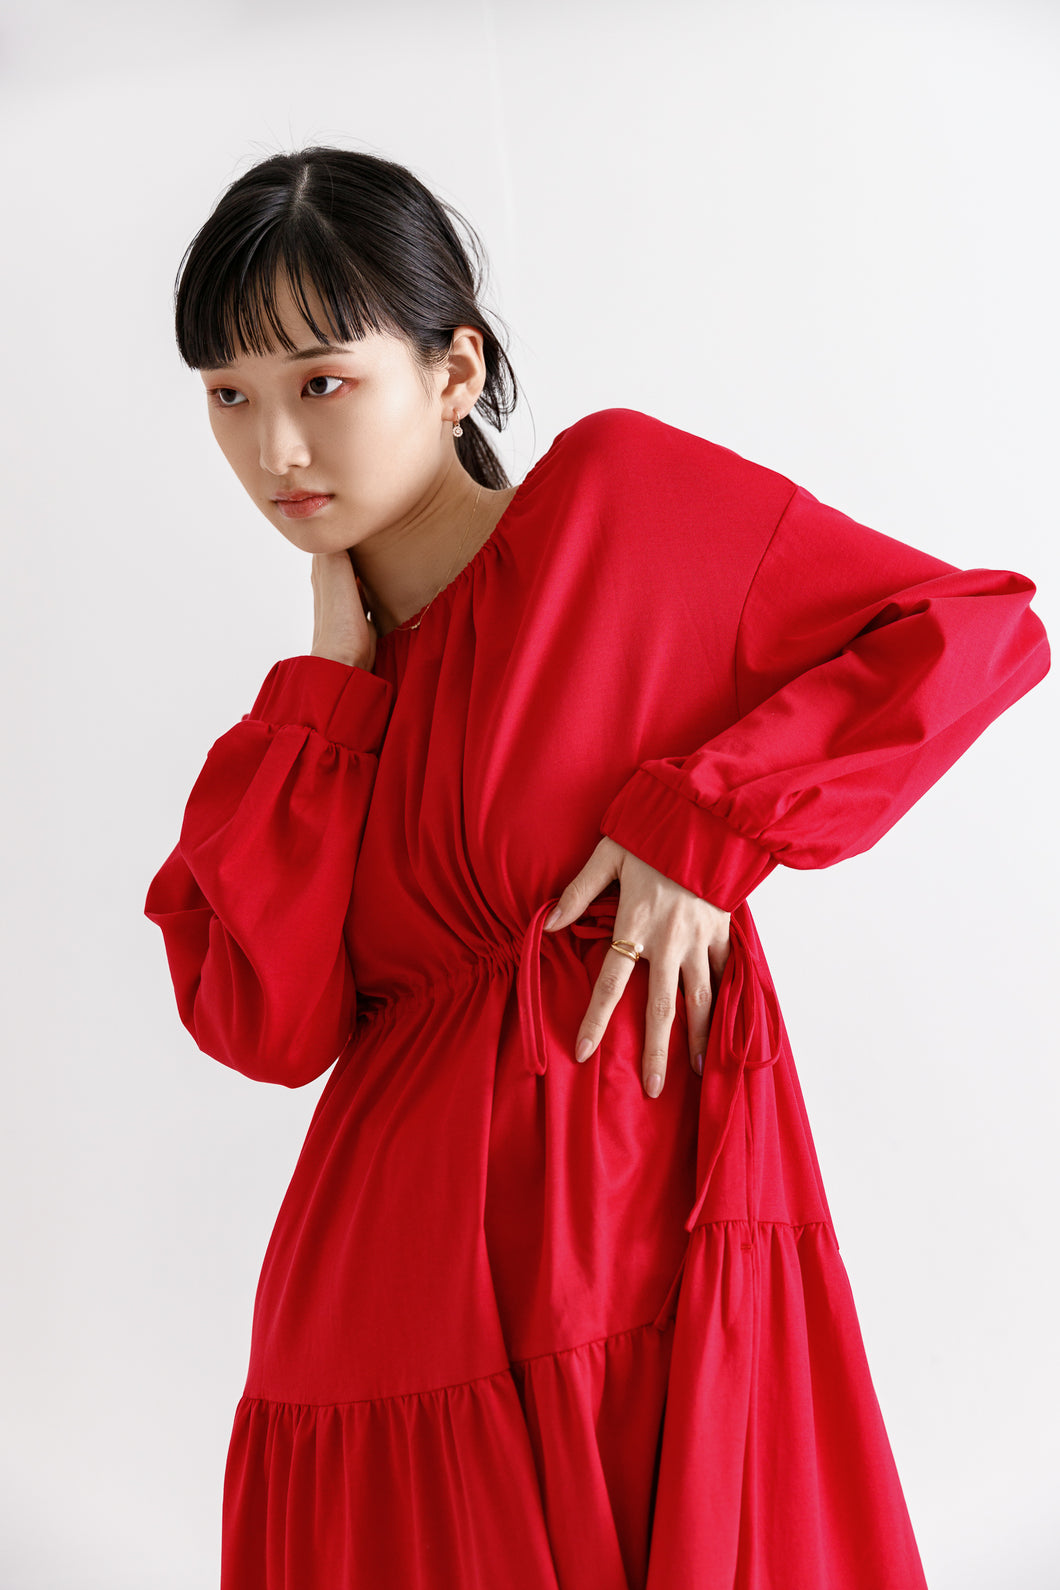 【Vol.1】Onepiece Red #2